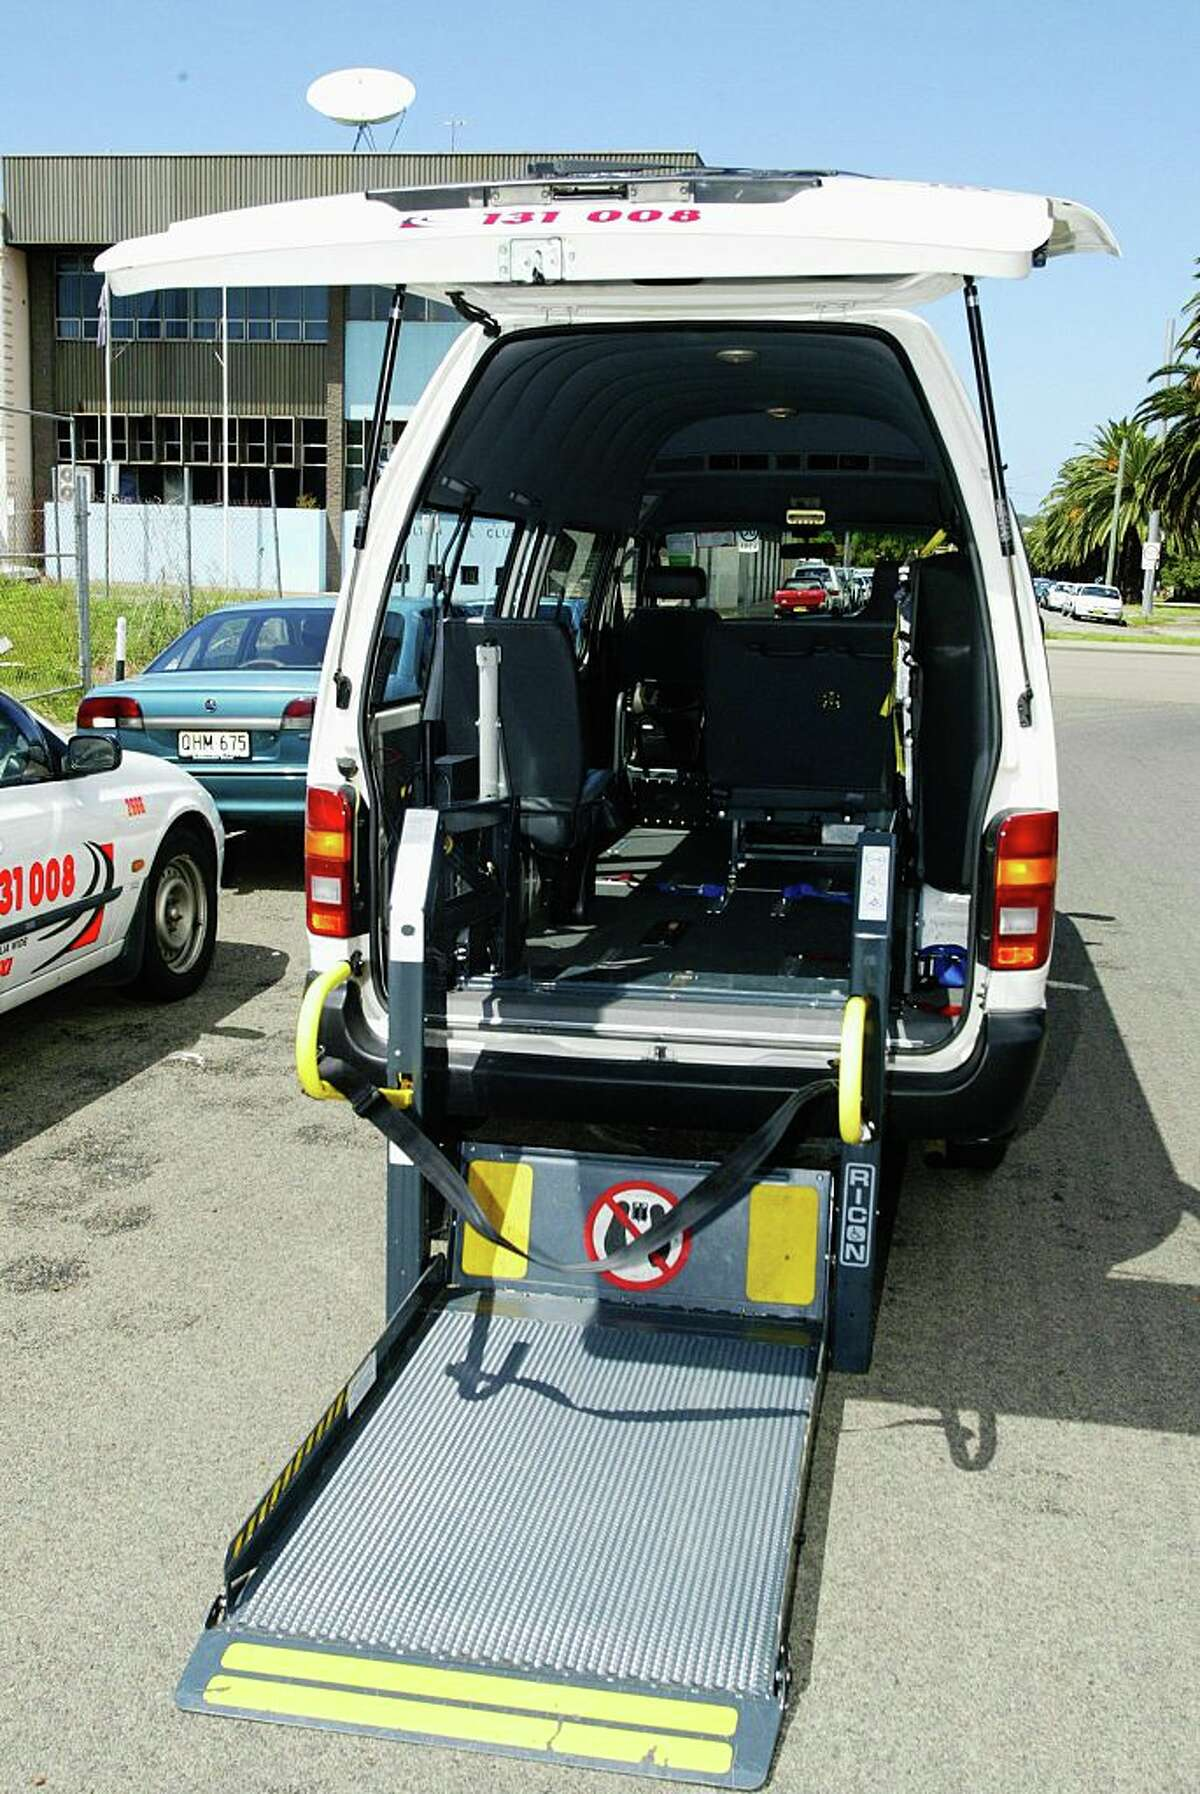 (AUSTRALIA OUT) A disabled attachment on a Newcastle Texis Taxi at Hamilton, 11 February 2005. SMH picture by FIONA MORRIS (Photo by Fairfax Media via Getty Images/Fairfax Media via Getty Images via Getty Images)